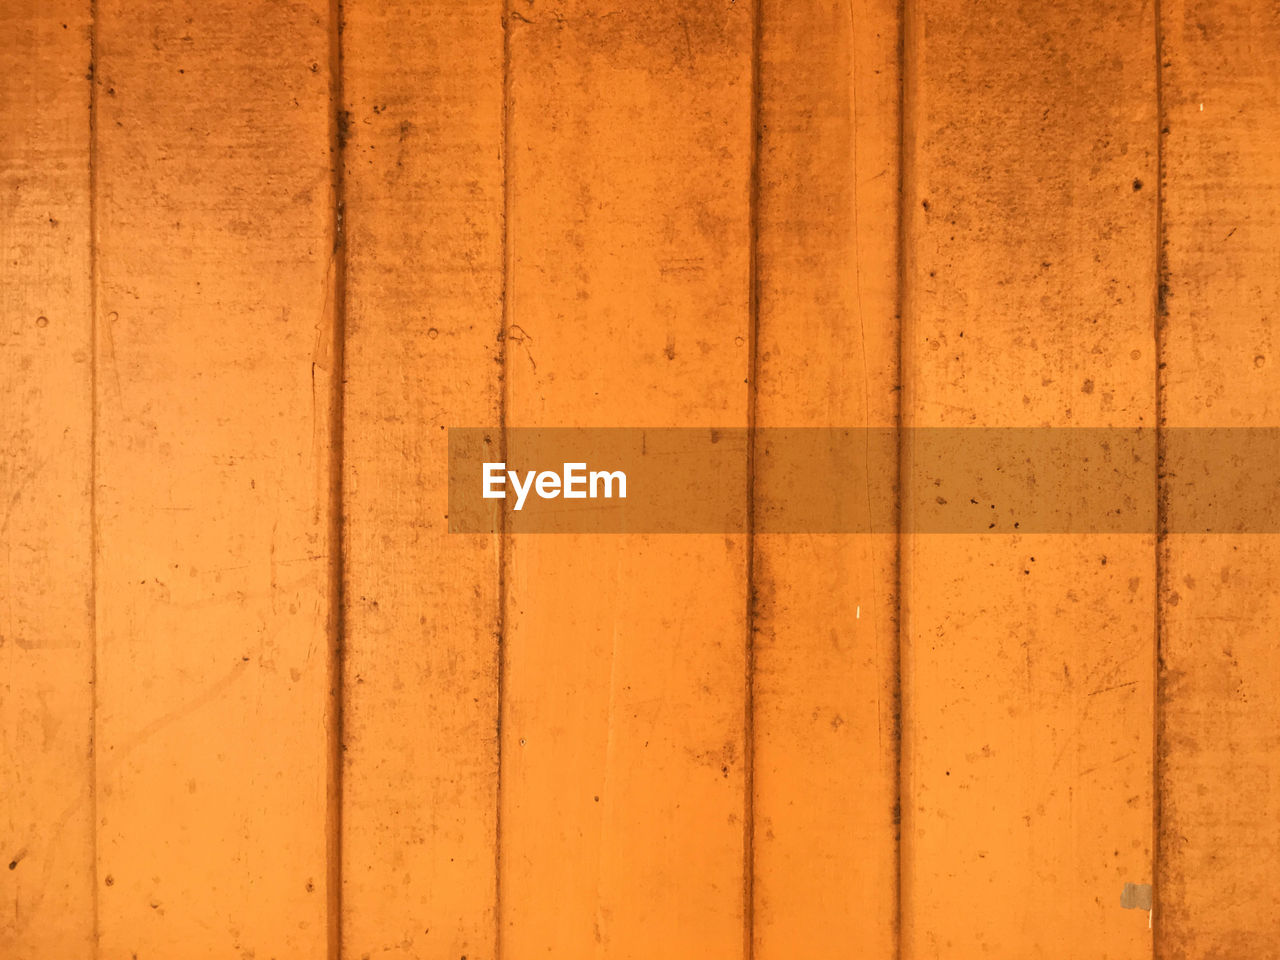 backgrounds, full frame, textured, wood - material, pattern, wall - building feature, architecture, no people, wood, close-up, brown, plank, built structure, old, indoors, wood grain, flooring, orange color, colored background, weathered, concrete